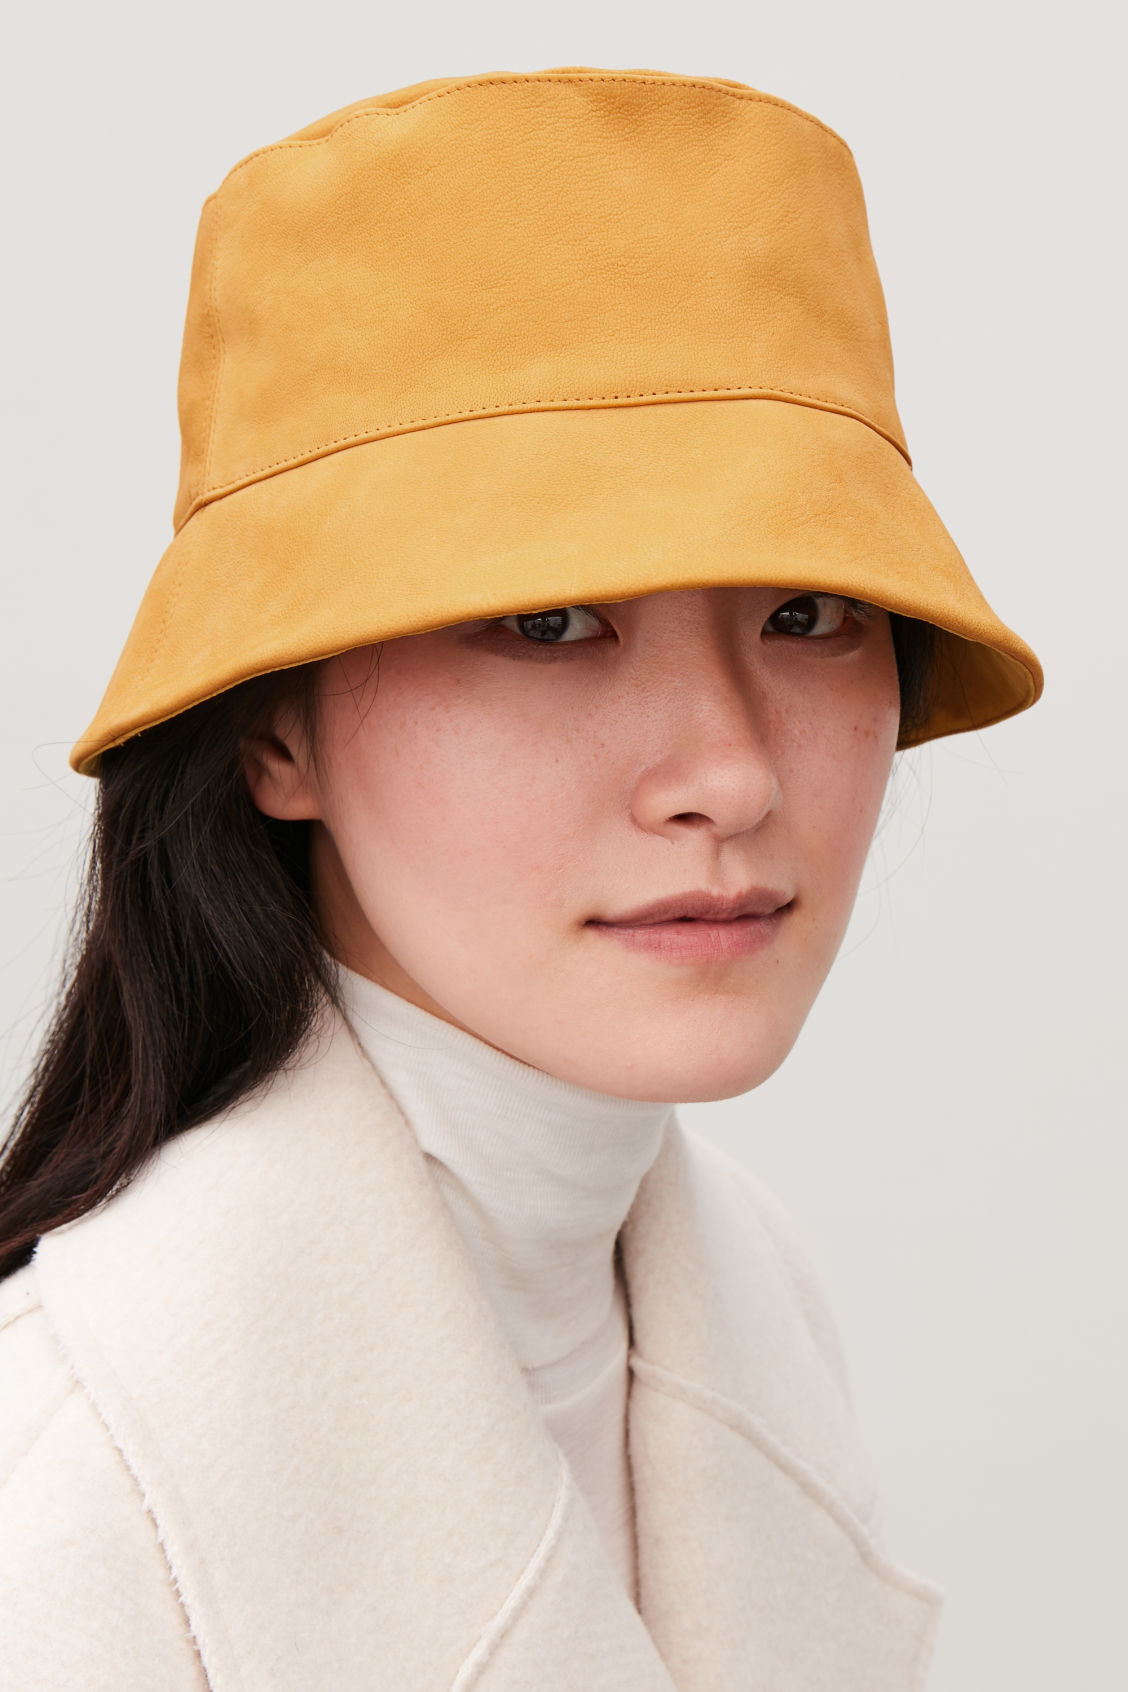 NUBUCK LEATHER BUCKET HAT - Mustard - Hats Scarves and ... 1824c1f7a10c